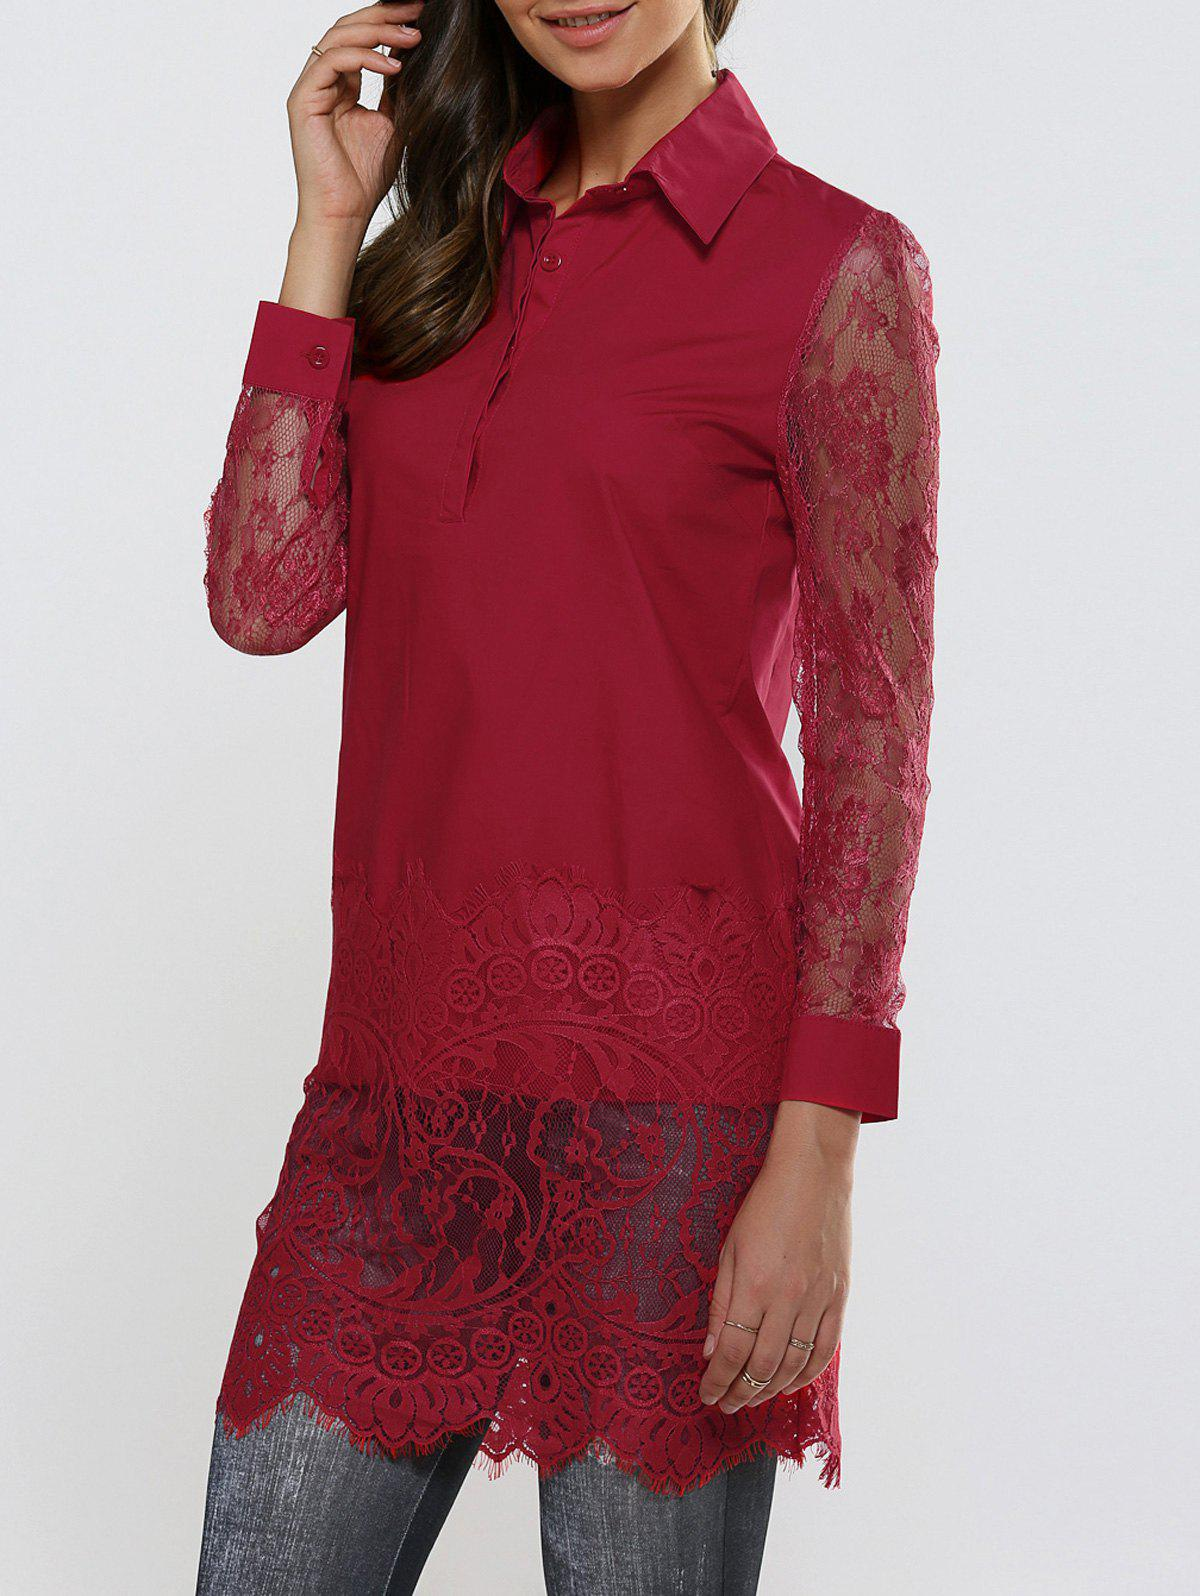 Long Sleeve Lace Spliced Scalloped ShirtWomen<br><br><br>Size: M<br>Color: DEEP RED